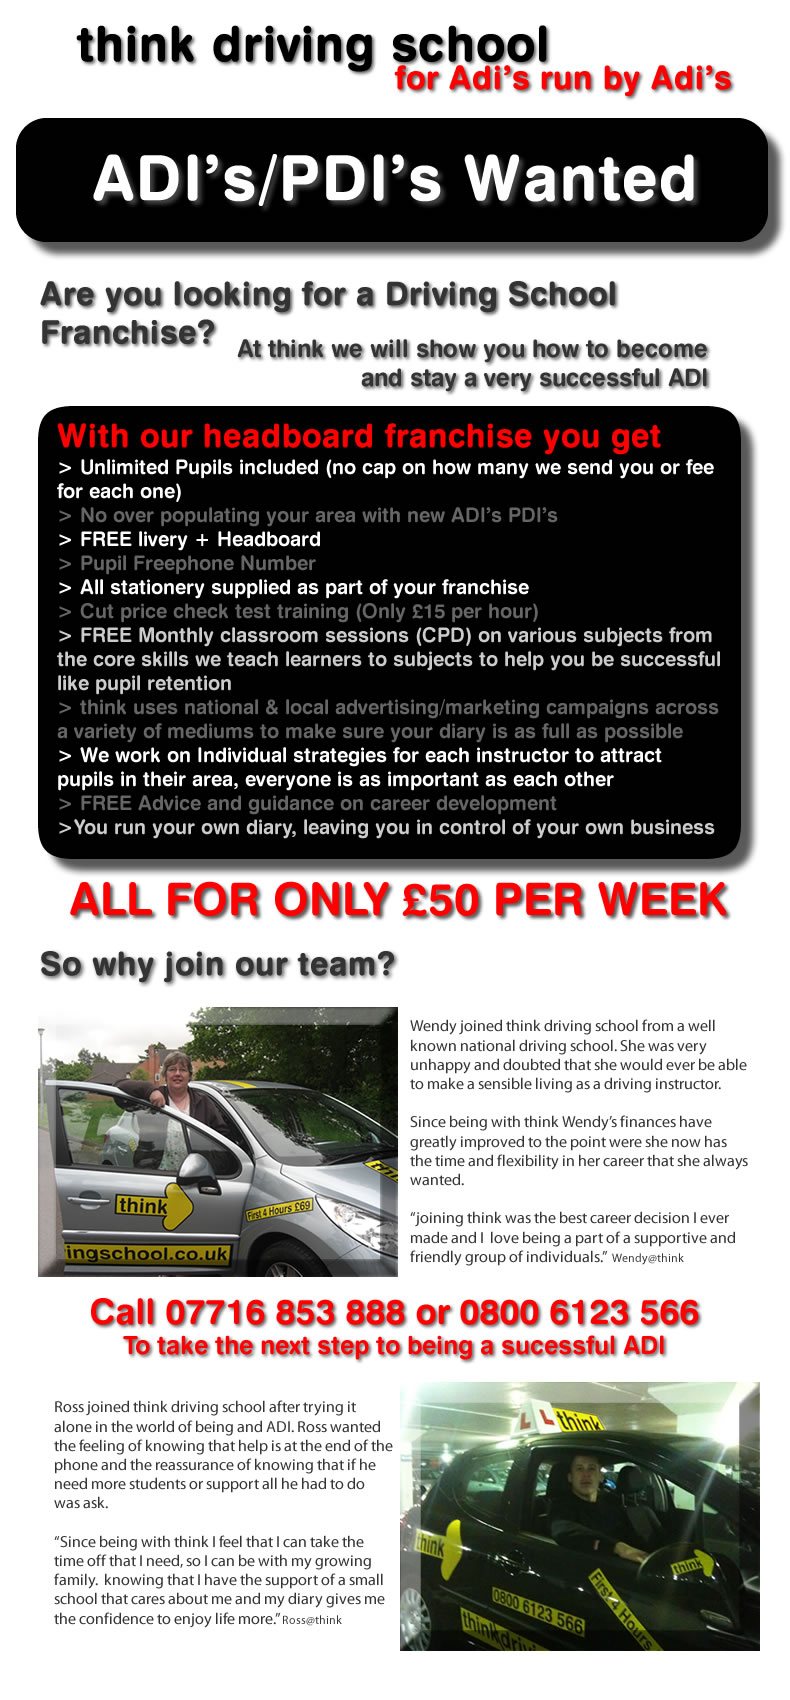 > Unlimited Pupils included (no cap on how many we send you or fee for each one) > No over populating your area with new ADI's PDI's > FREE livery + Headboard > Pupil Freephone Number > All stationery supplied as part of your franchise > Cut price check test training (Only £15 per hour) > FREE Monthly classroom sessions (CPD) on various subjects from the core skills we teach learners to subjects to help you be successful like pupil retention  > think uses national & local advertising/marketing campaigns across a variety of mediums to make sure your diary is as full as possible > We work on Individual strategies for each instructor to attract pupils in their area, everyone is as important as each other > FREE Advice and guidance on career development  >You run your own diary, leaving you in control of your own business Wendy joined think driving school from a well known national driving school. She was very unhappy and doubted that she would ever be able to make a sensible living as a driving instructor.  Since being with think Wendy's finances have greatly improved to the point were she now has the time and flexibility in her career that she always wanted.  joining think was the best career decision I ever made and I  love being a part of a supportive and friendly group of individuals.  Wendy@think